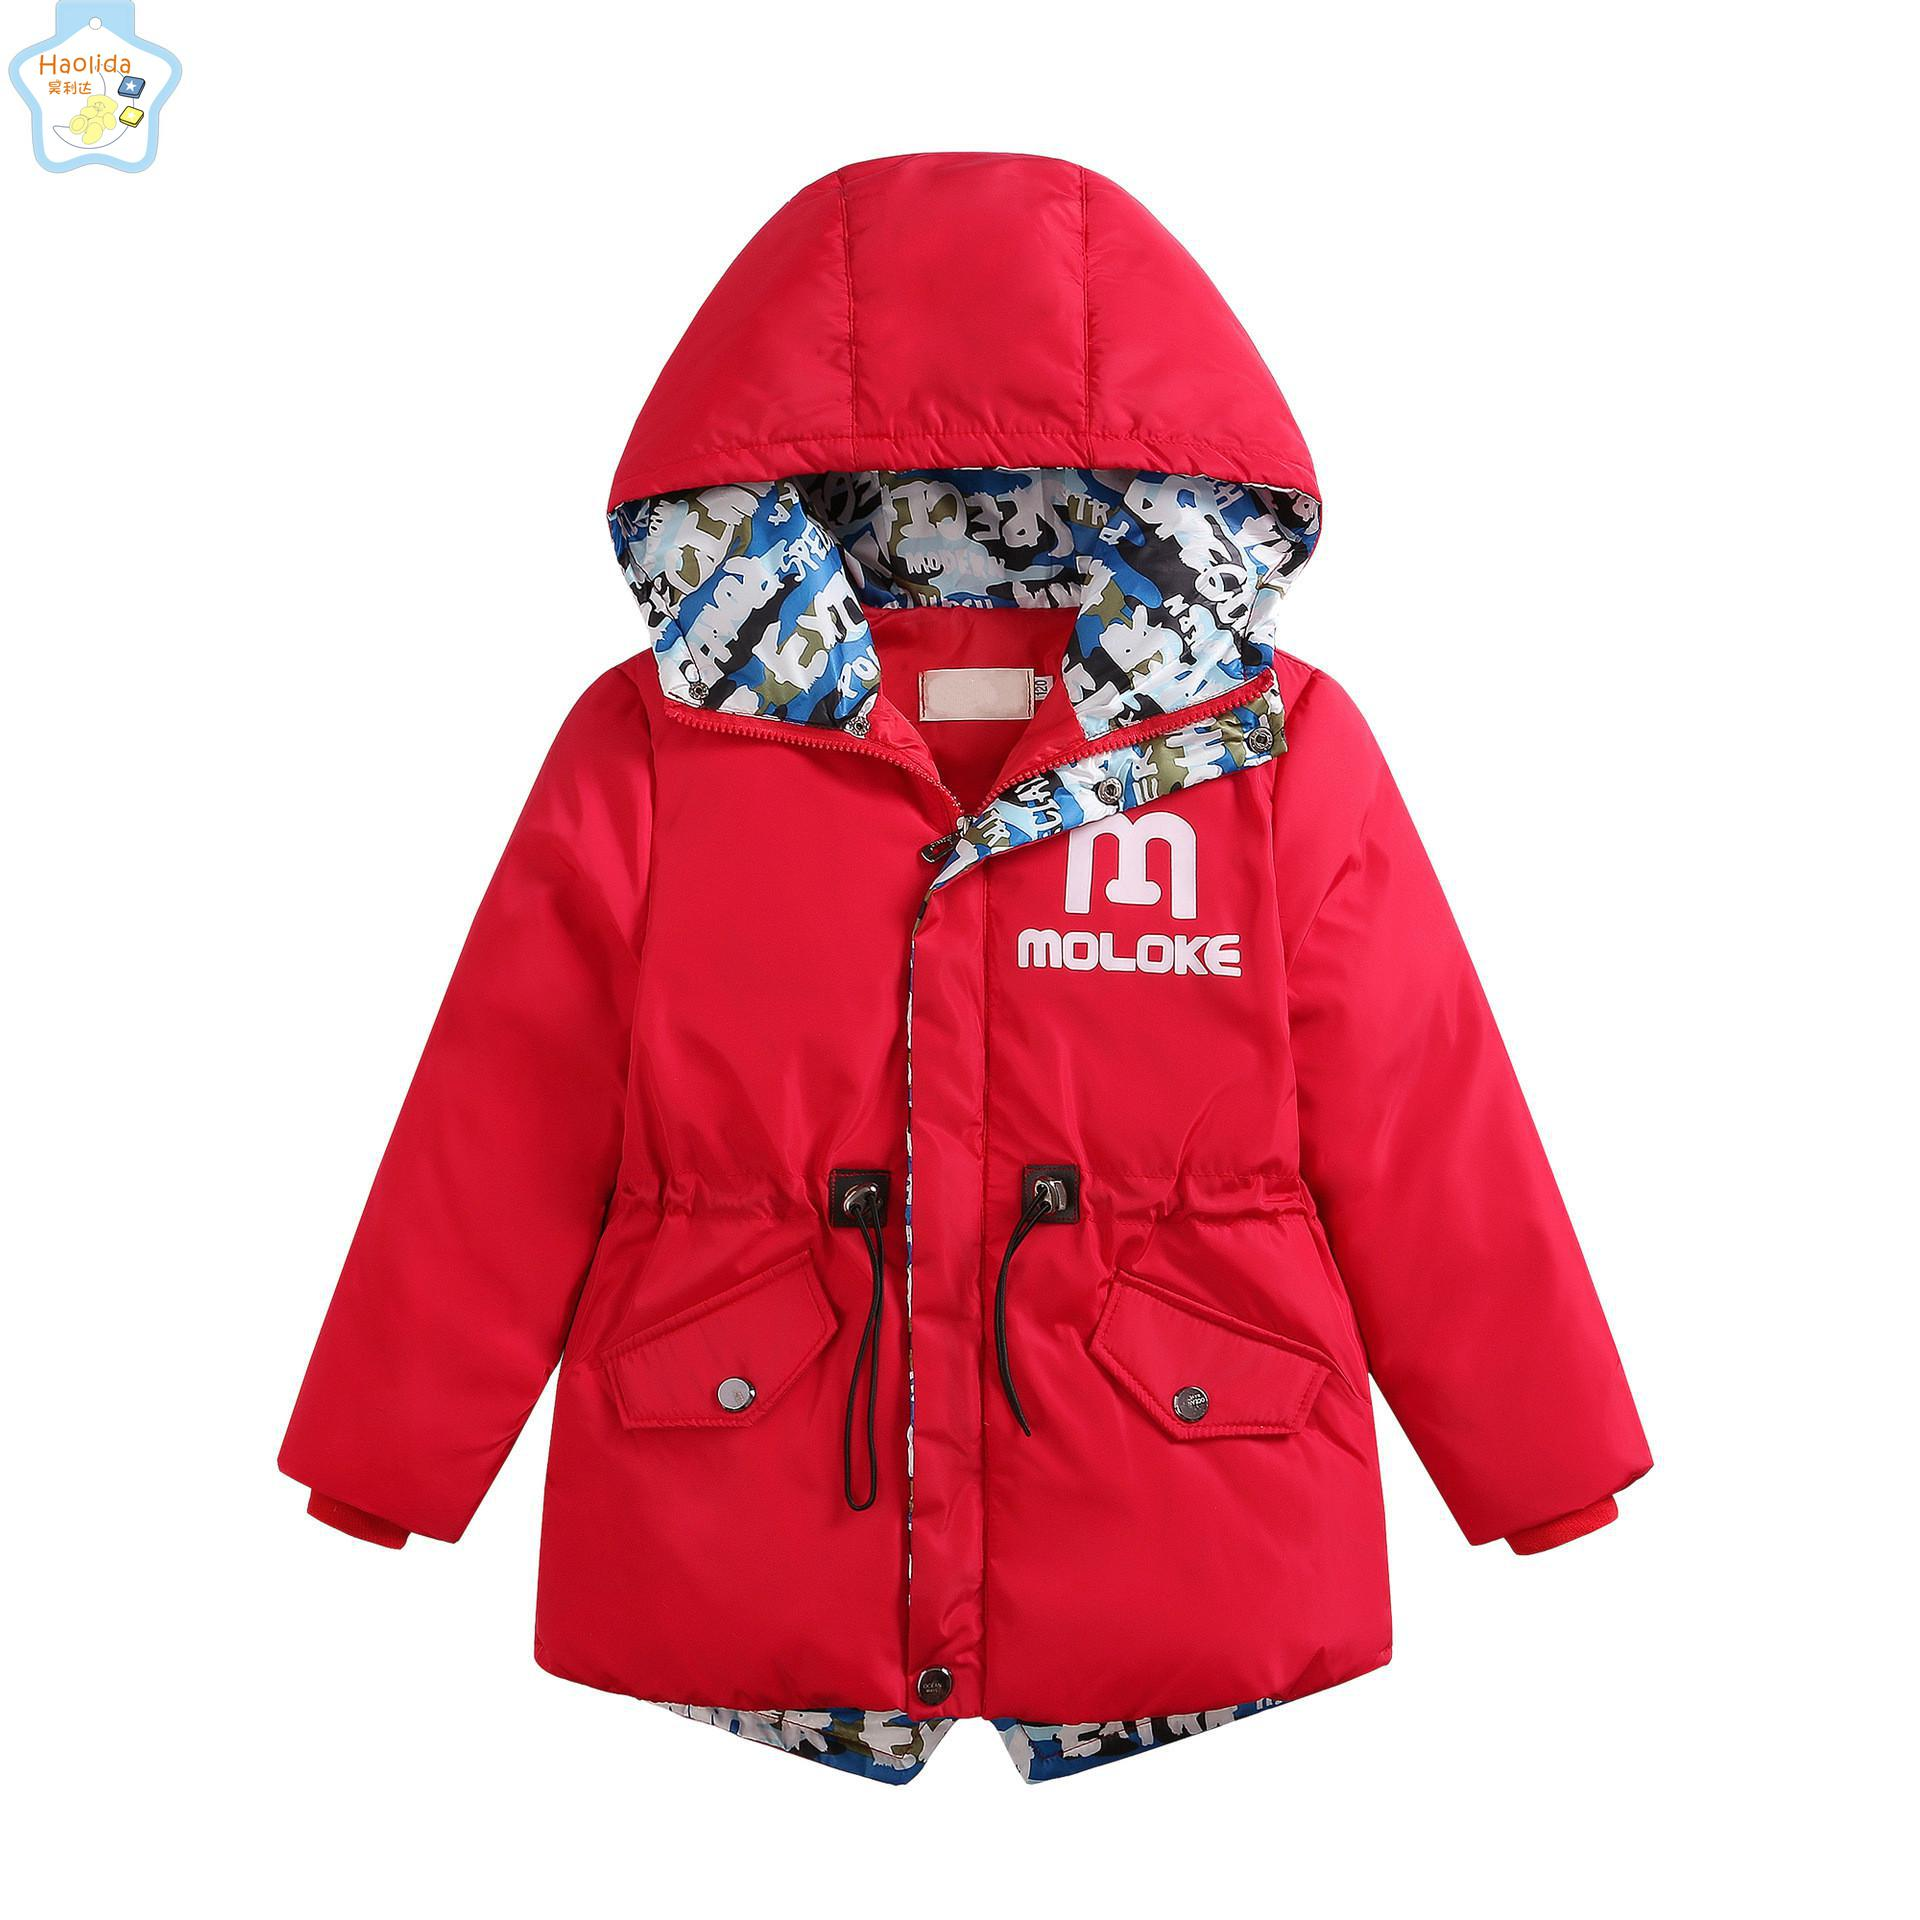 2017 New Thick Winter Children Jackets Girls Boys Coats Hooded Faux Kids Outerwear Cotton Padded Baby Girl Boy Snowsuit 5-11t 9m 4t baby girls 2015 new autumn winter thick wadded coat kids cotton warm hooded jackets children padded outerwear